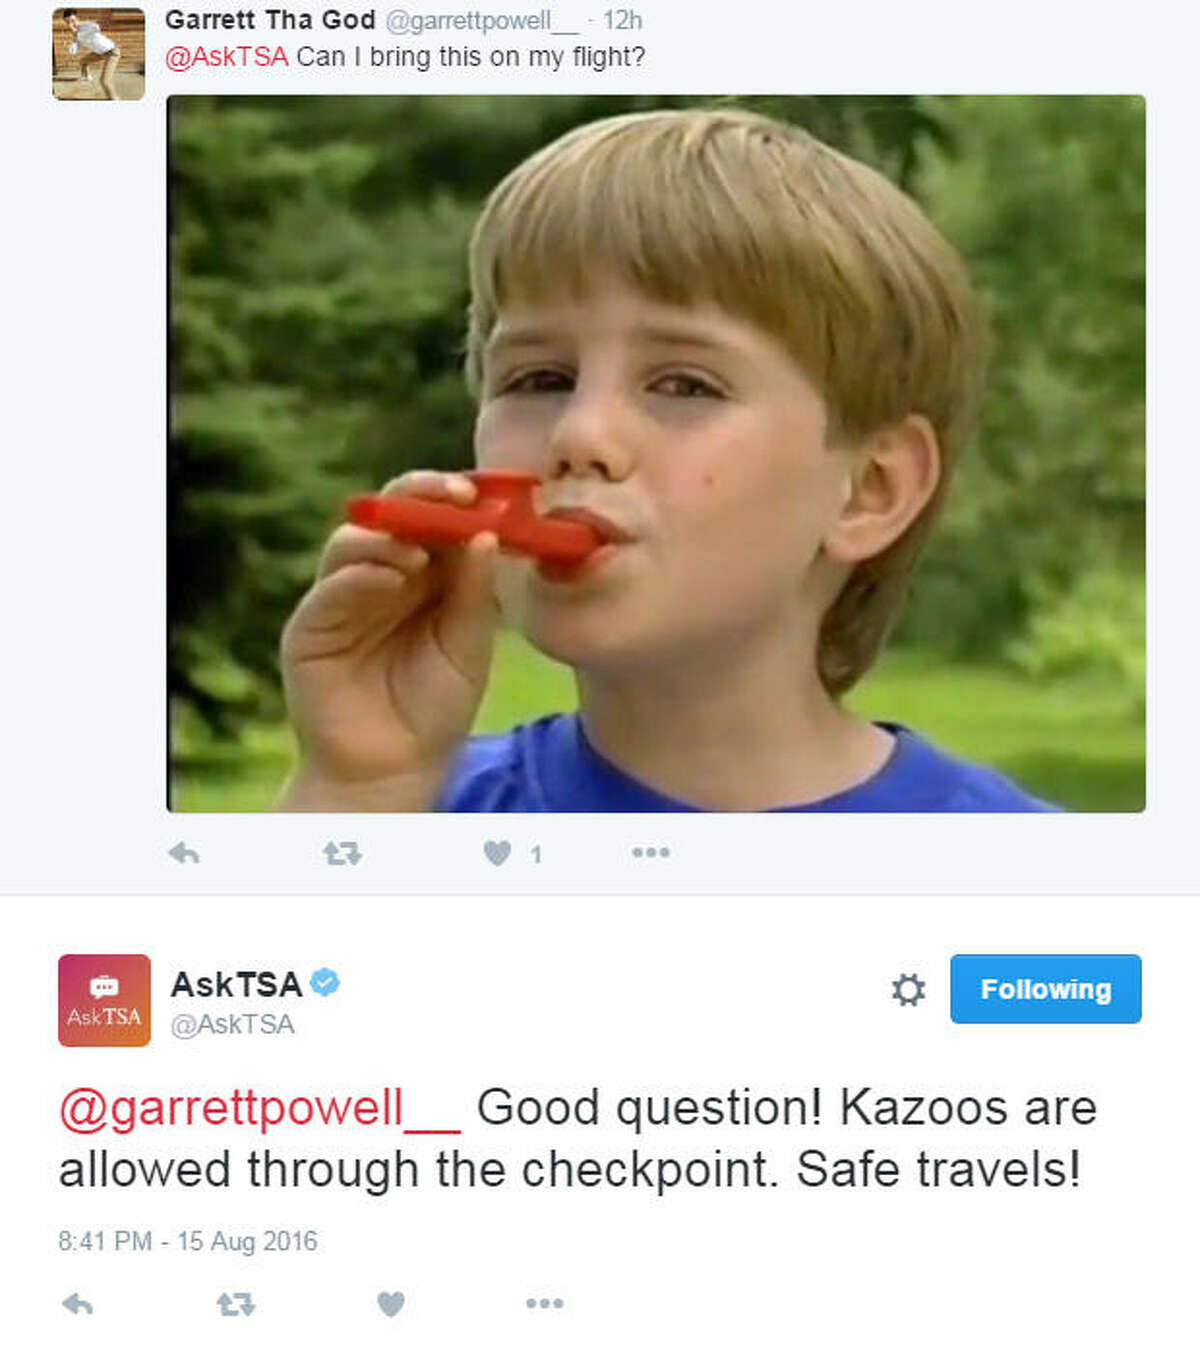 The Transportation Security Administration rolled out a new Twitter feed this year, @AskTSA, to let fliers know what they can and cannot bring on a plane. Of course some people are having fun with the helpful service.